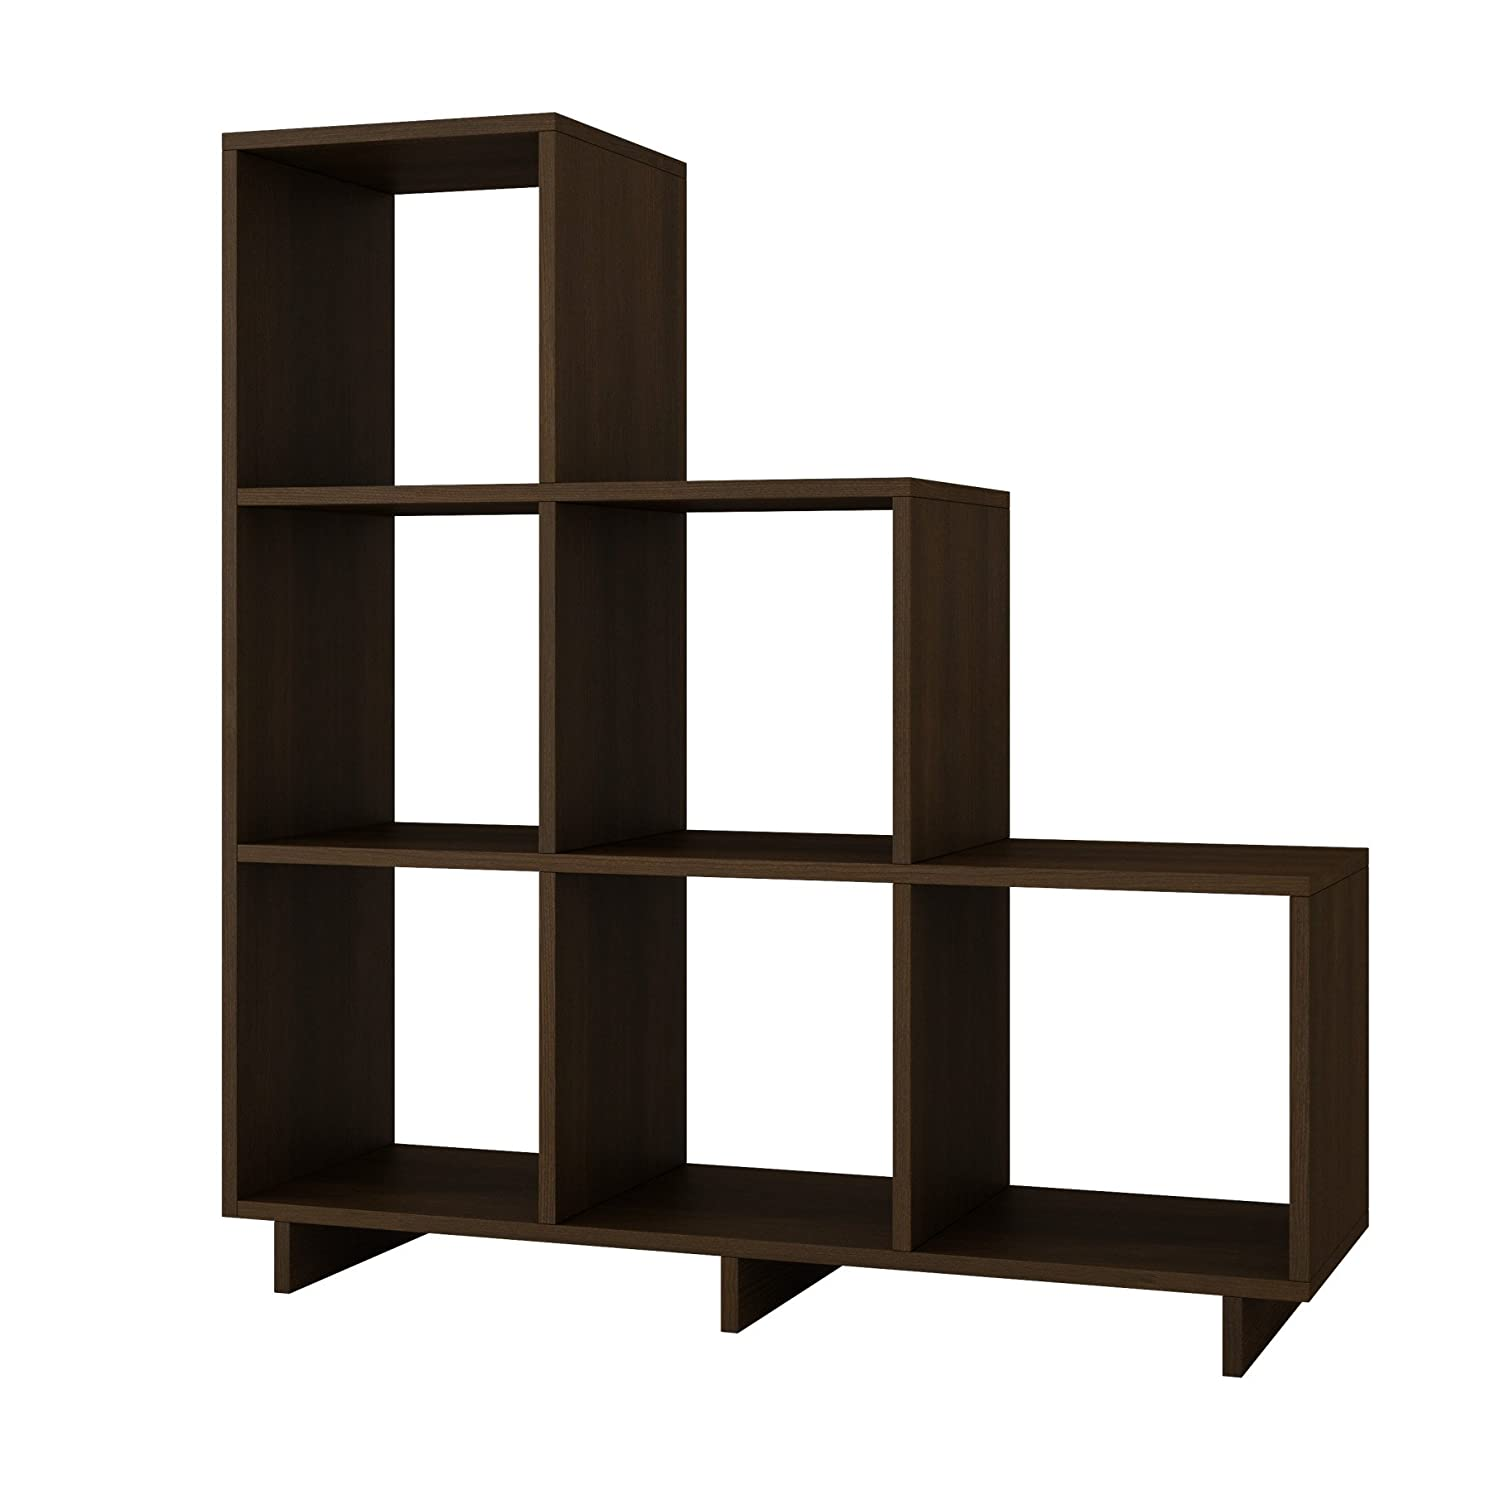 Design Stair Shelves amazon com stair cubby with 6 cube shelves modern style tobacco home kitchen